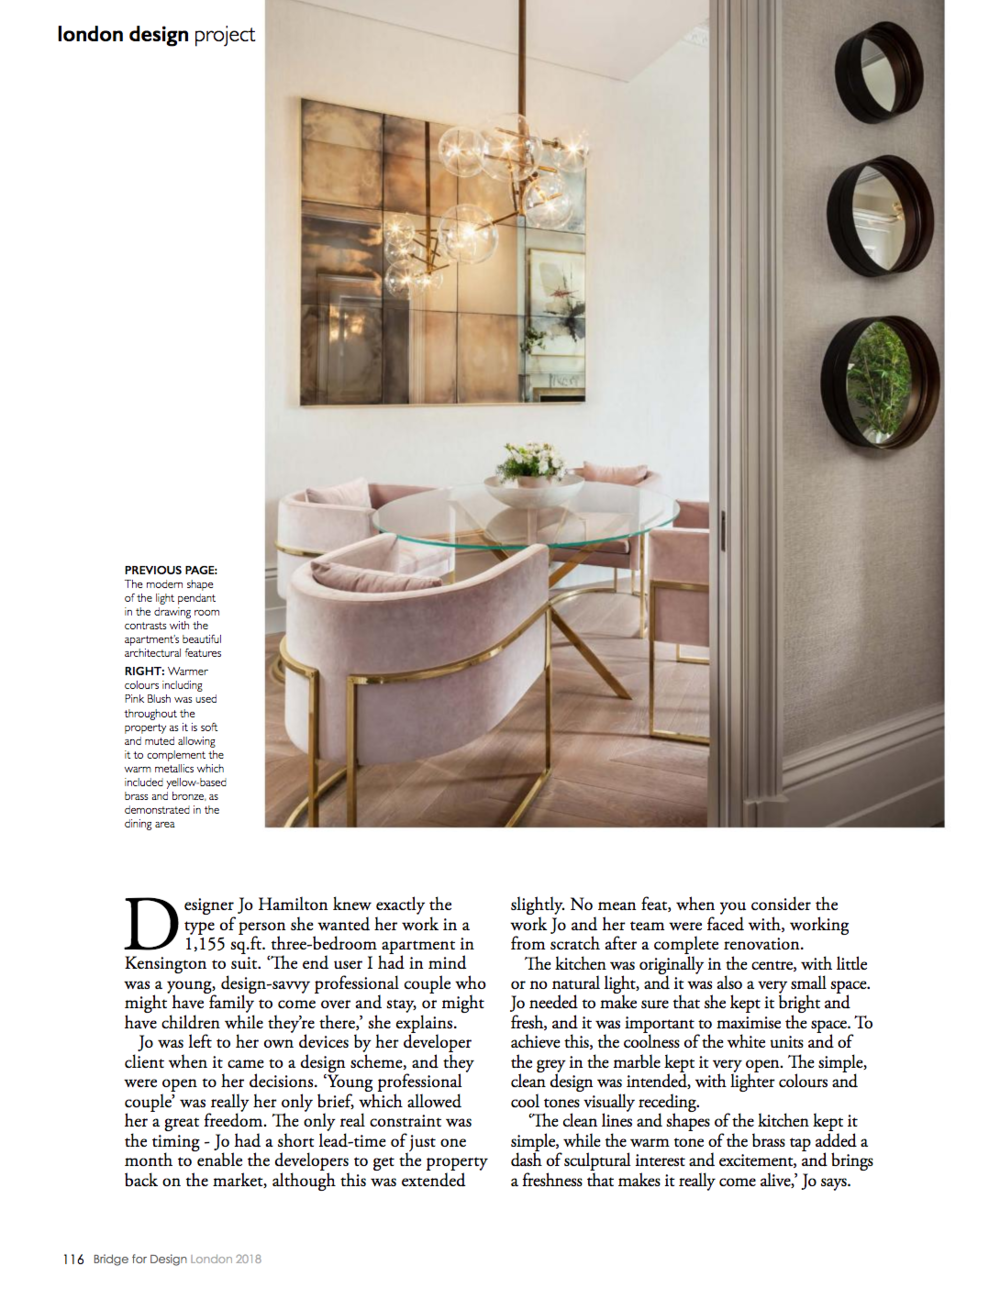 Interior designer Jo Hamilton Bridge for Design p116